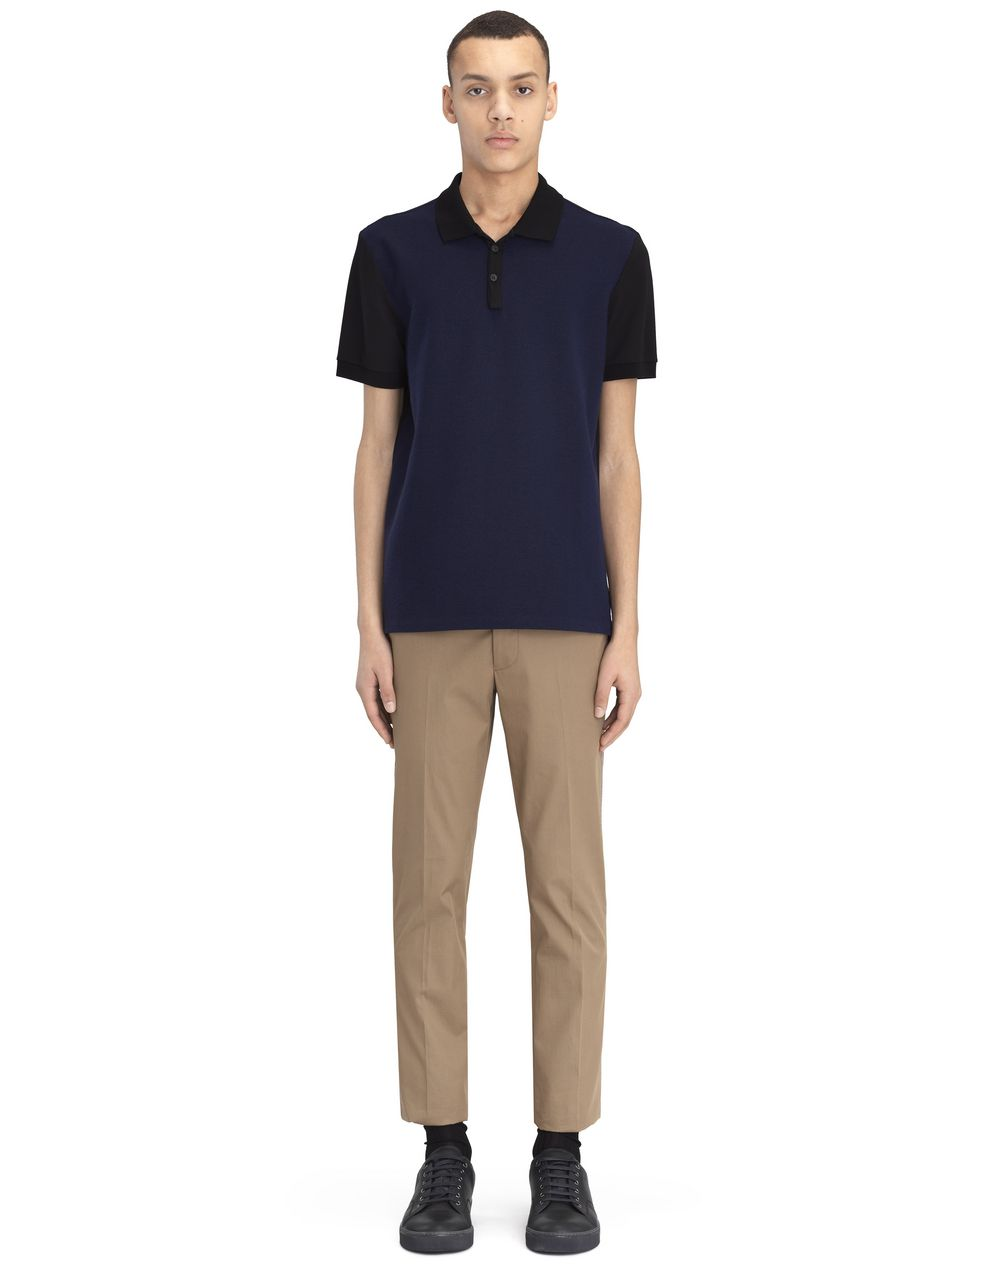 TWO-TONED POLO - Lanvin